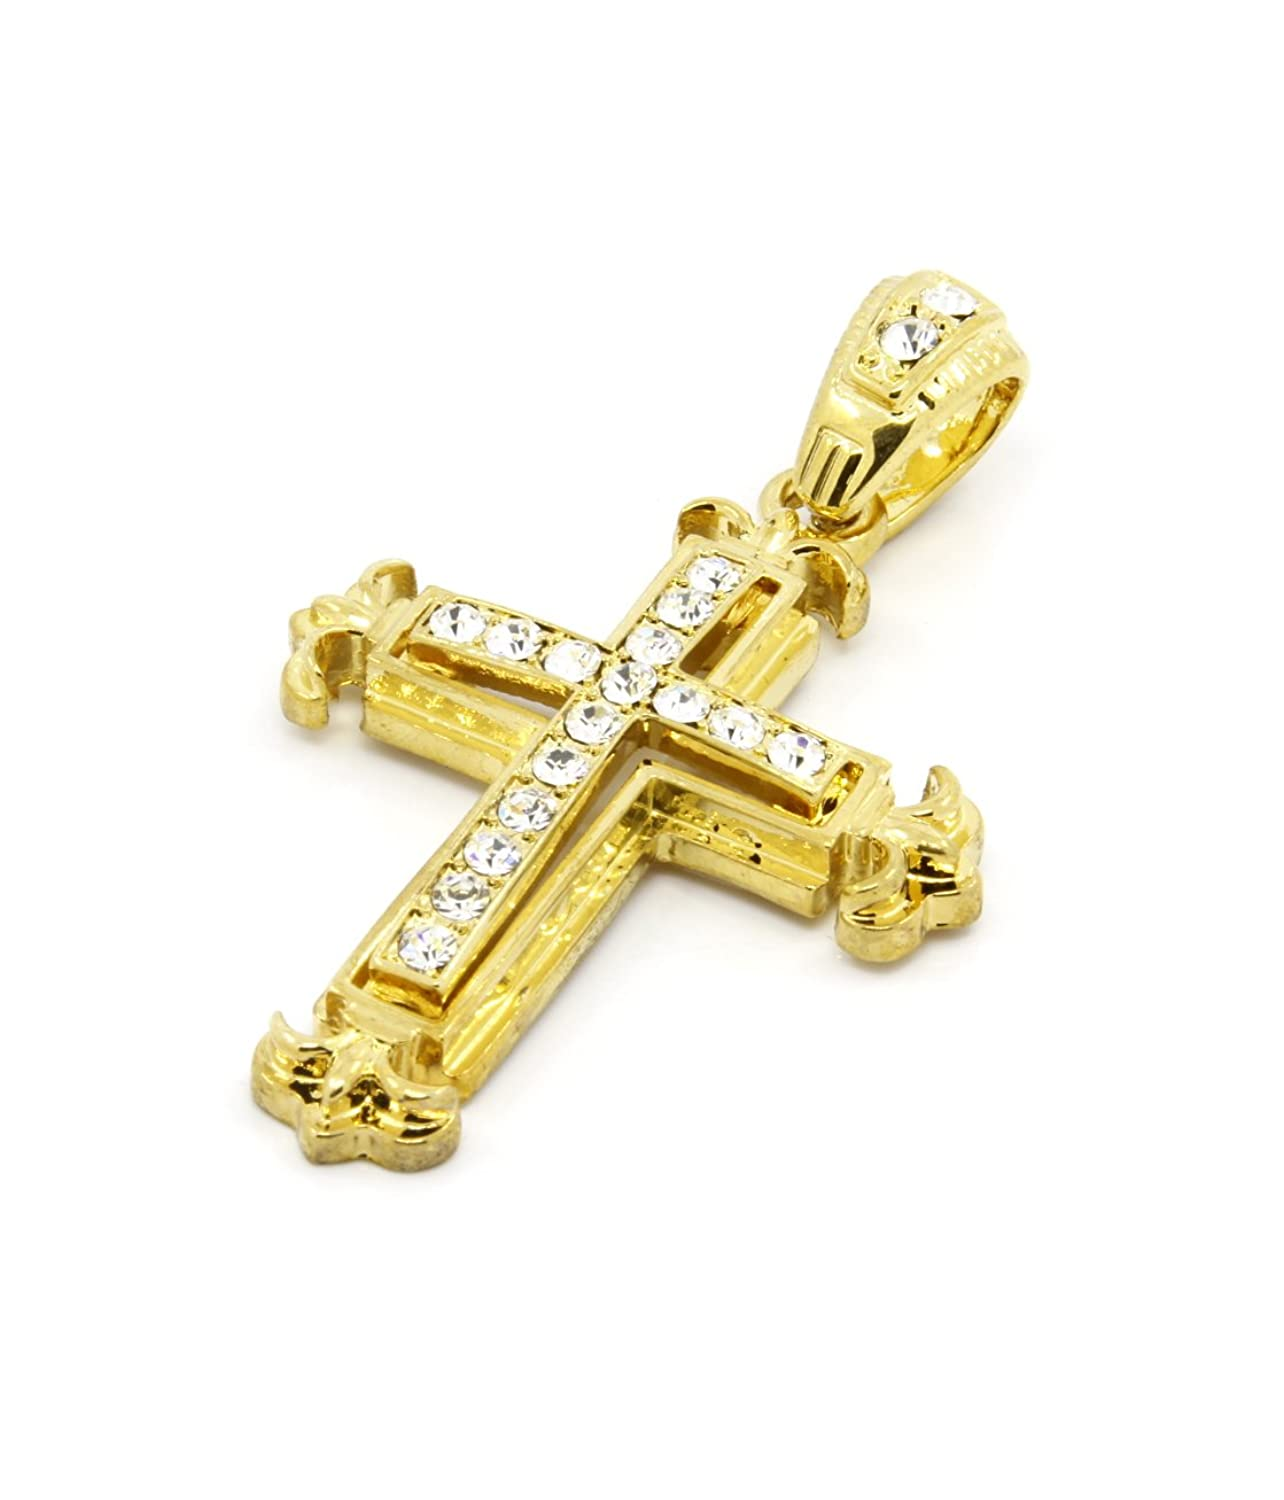 "Gold Iced Out Cz Sharp Sides Cross Pendant Hip hop 24"" Inch Cuban"